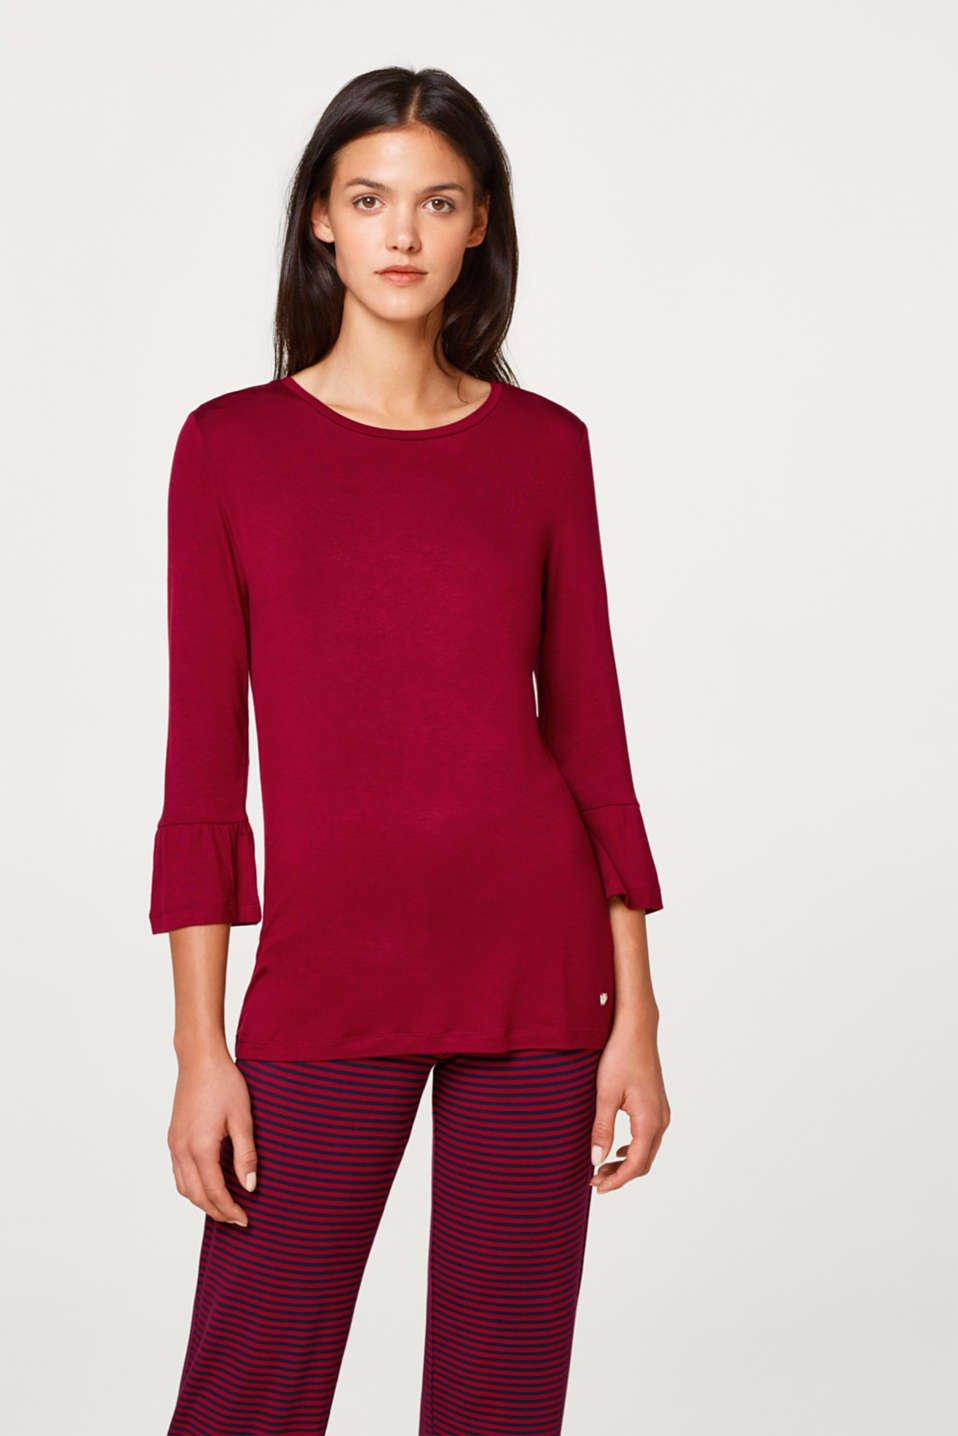 Comfy and stretchy jersey T-shirt